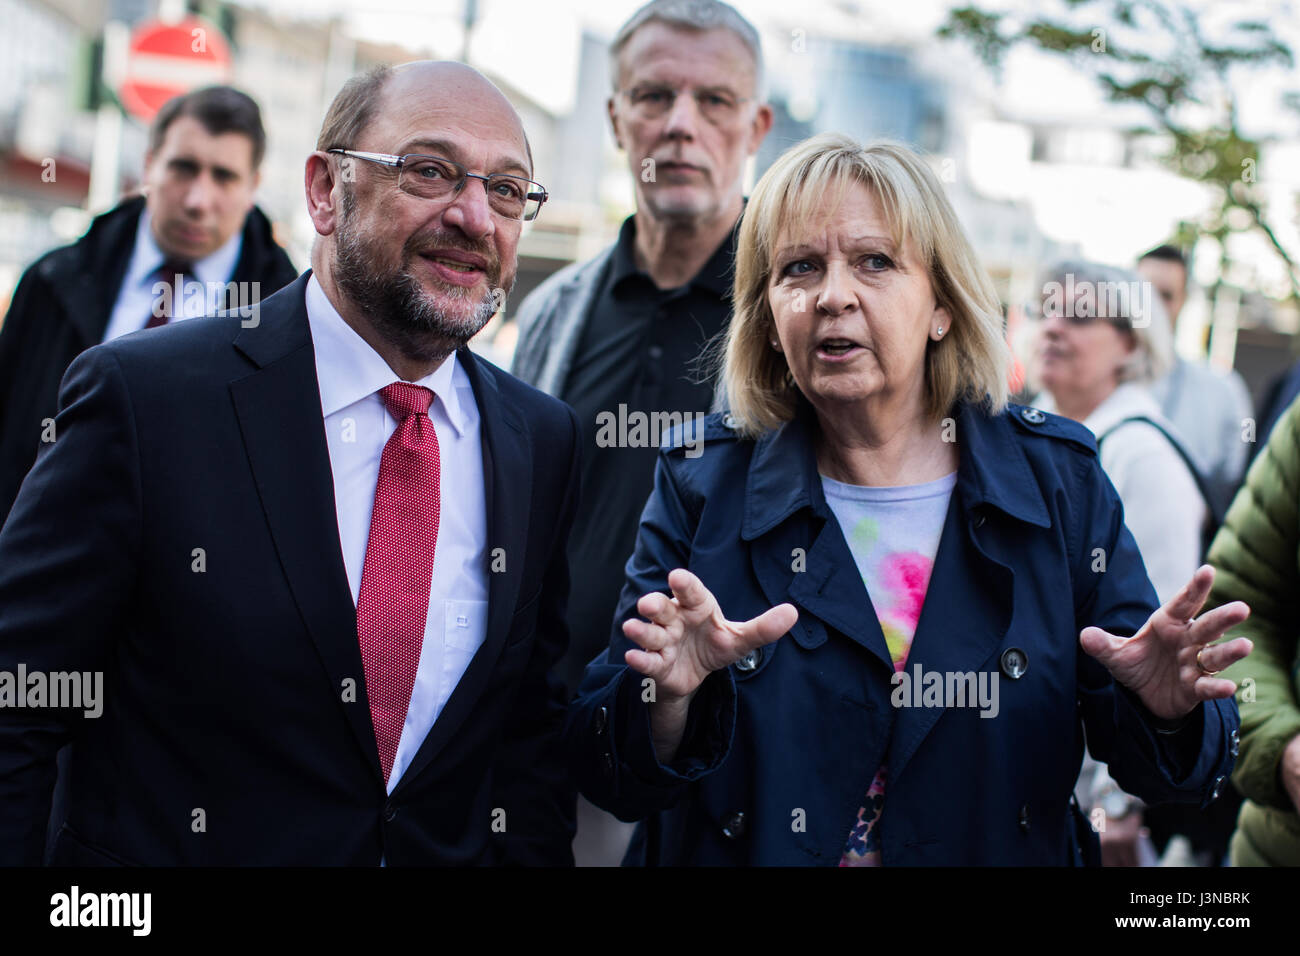 Mulheim and der Ruhr, Germany. 6th May, 2017. The SPD's candidate for Chancellor, Martin Schulz (front left), - Stock Image